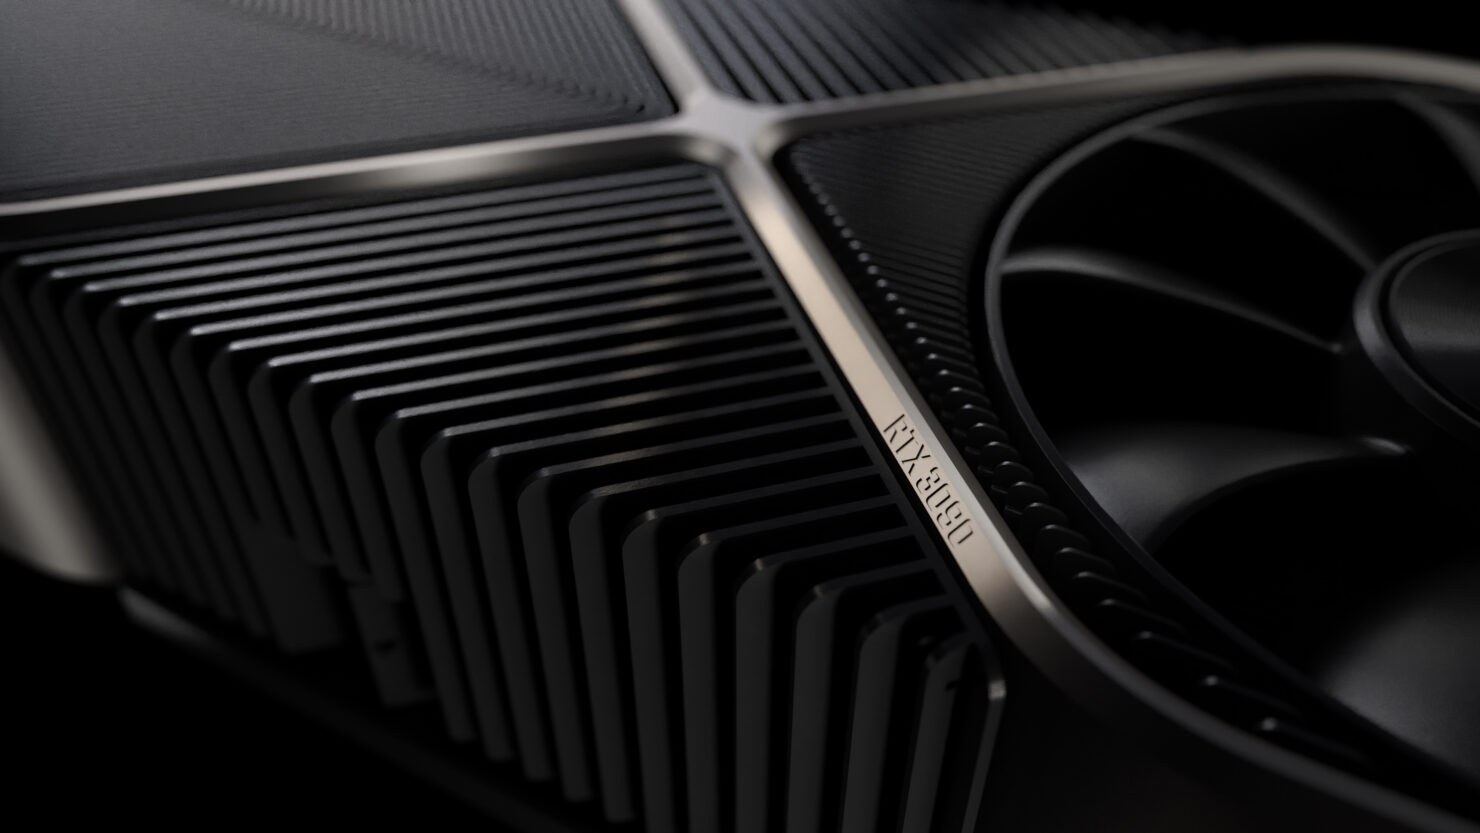 nvidia-geforce-rtx-3080-ti-rumored-to-get-12-gb-gddr6x-memory-rated-at-19-gbps,-will-feature-hash-rate-limiter-to-counter-crypto-miners